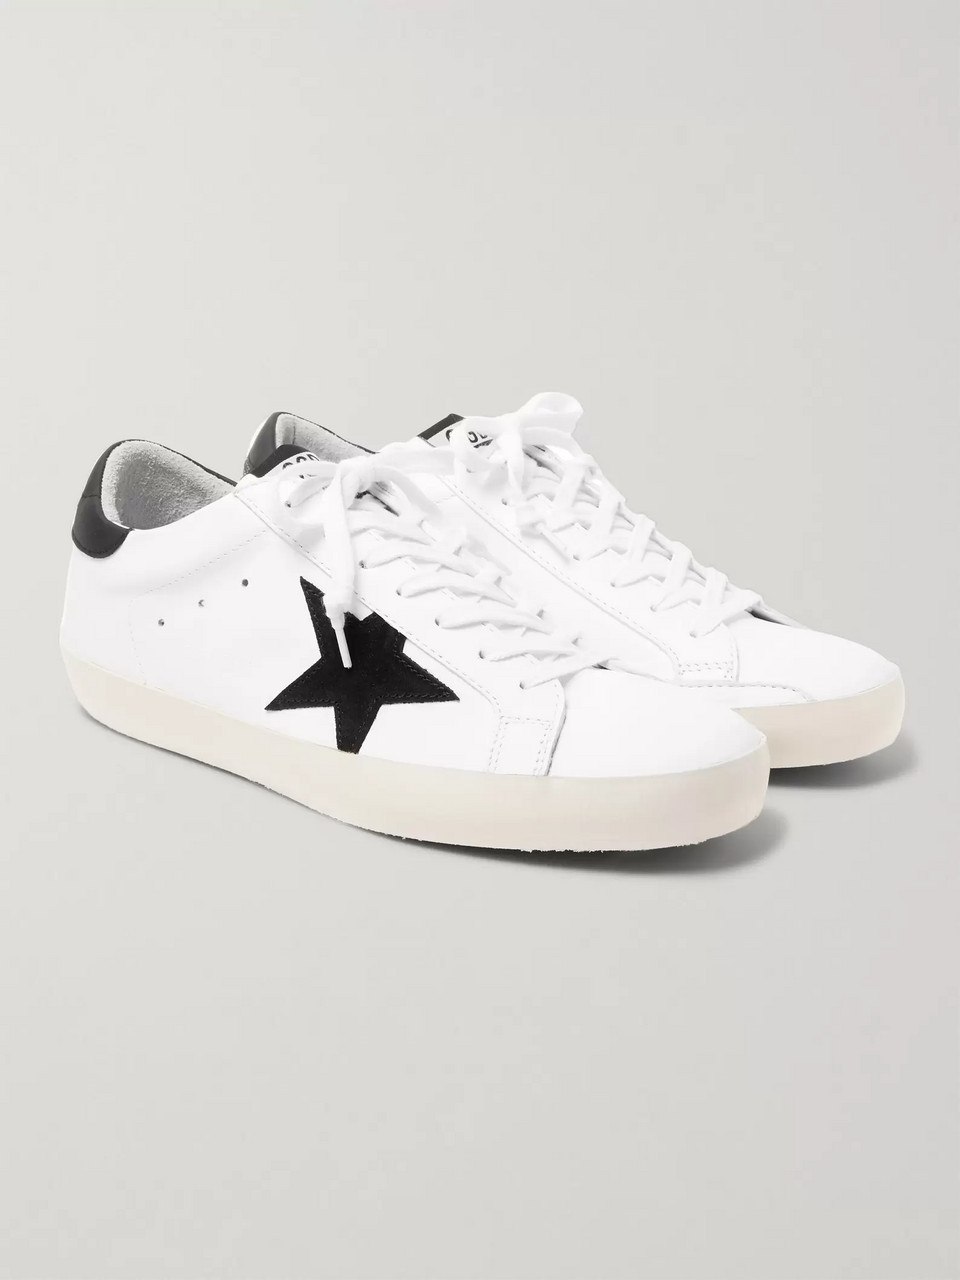 Golden Goose Superstar Leather and Suede Sneakers